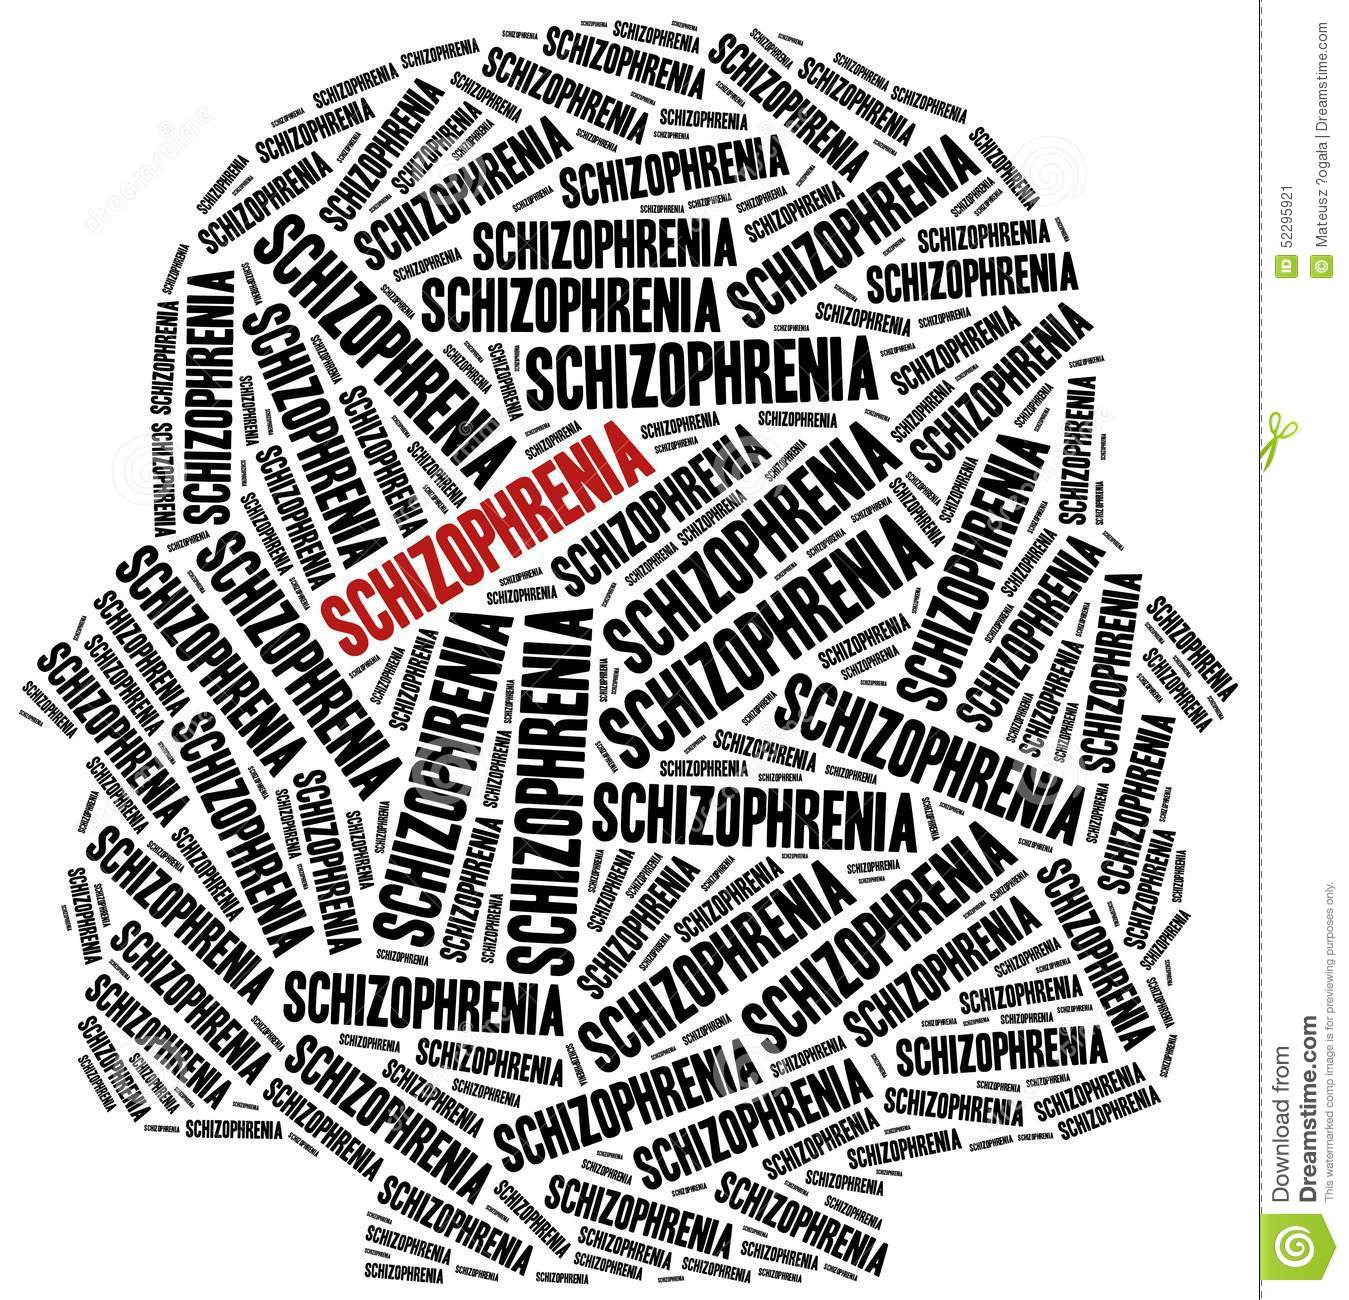 Stock Illustration Schizophrenia Mental Disease Concept Word Cloud Illustration Image52295921 on Language Emotions